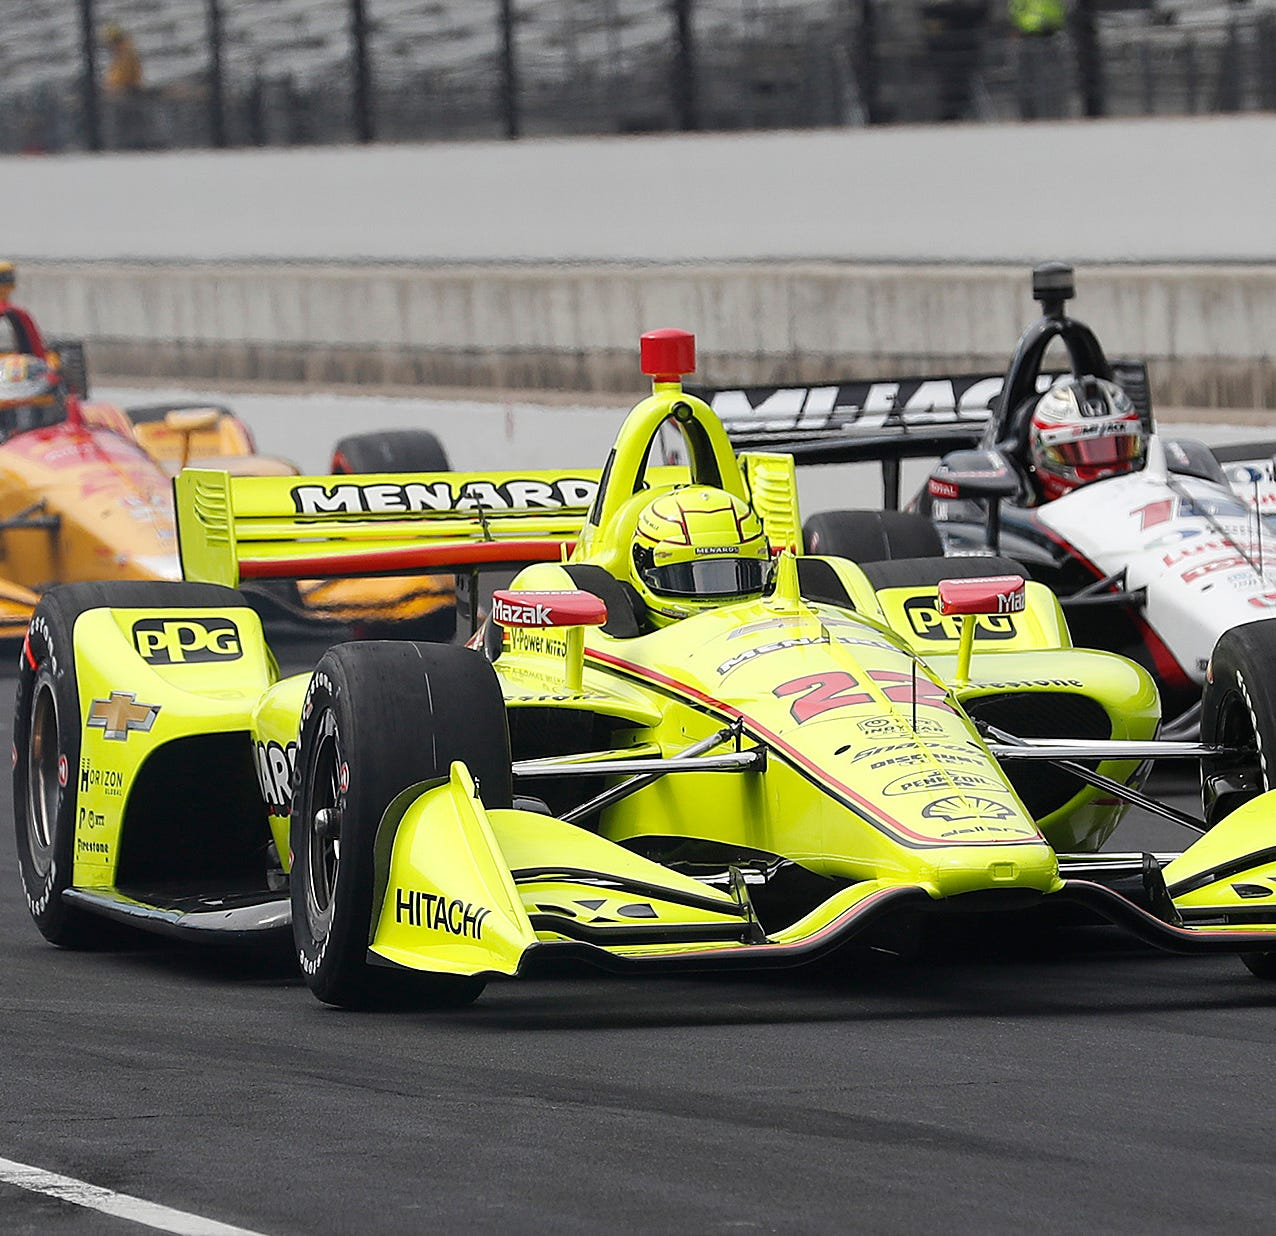 Simon Pagenaud makes incredible late pass to win IndyCar Grand Prix